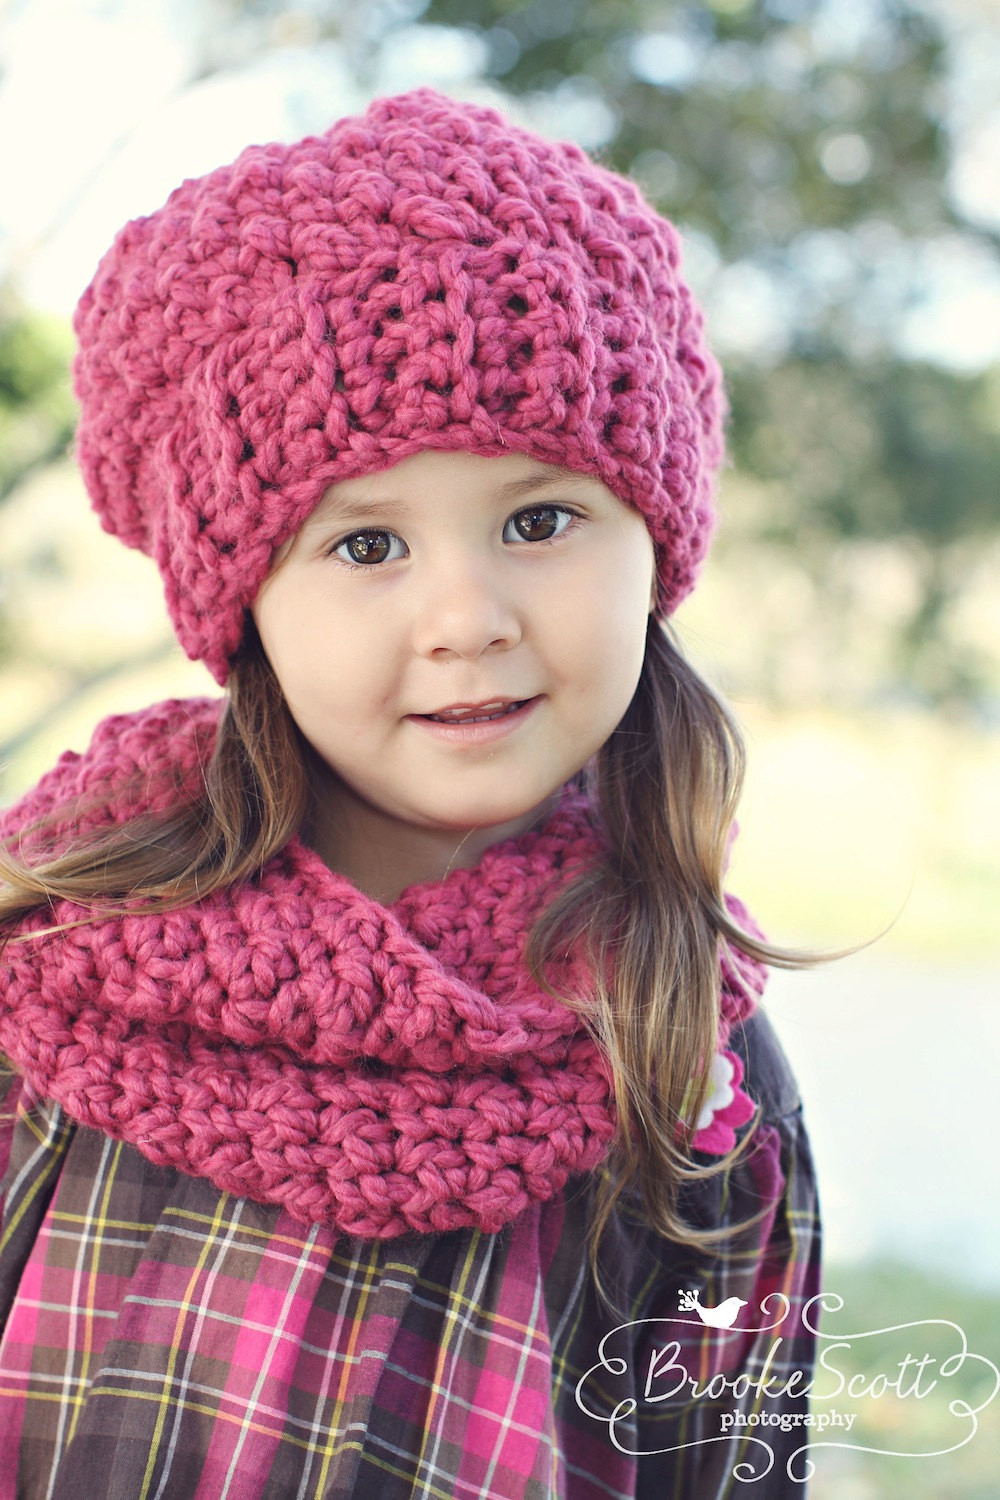 Beautiful Children S Crochet Scarf Patterns Free Crochet Hat and Scarf Patterns Free Of Amazing 47 Pics Crochet Hat and Scarf Patterns Free